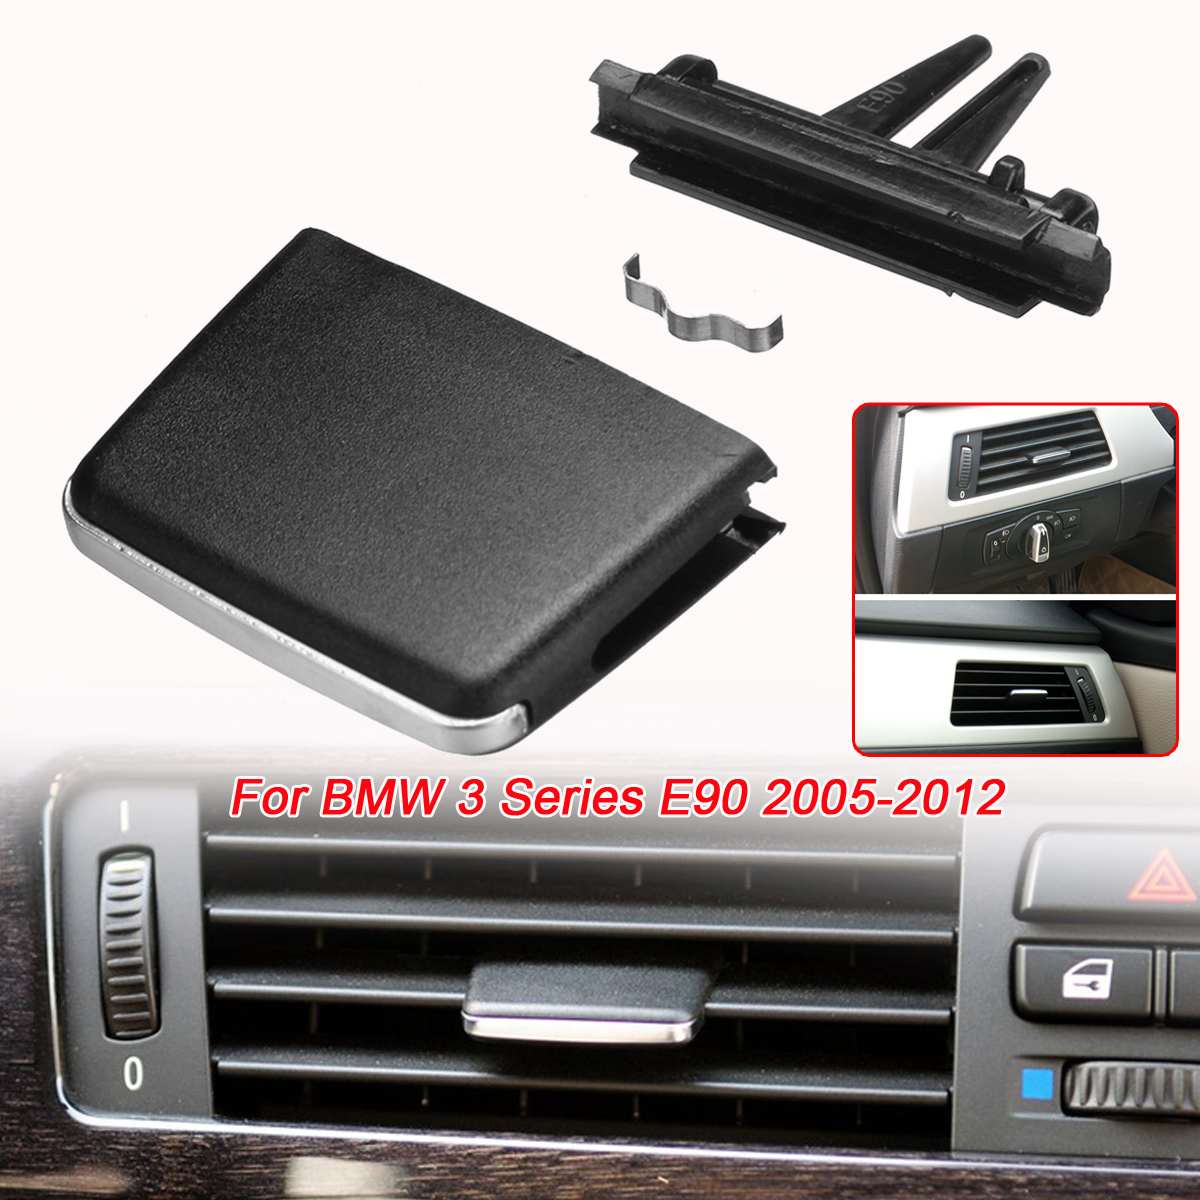 <font><b>E90</b></font> Car Front Air conditioning <font><b>Vent</b></font> Air Conditioning <font><b>Vent</b></font> Outlet Tab Clip Repair kit For <font><b>BMW</b></font> 3 Series <font><b>E90</b></font> 2005-2012 XB.YX.165 image